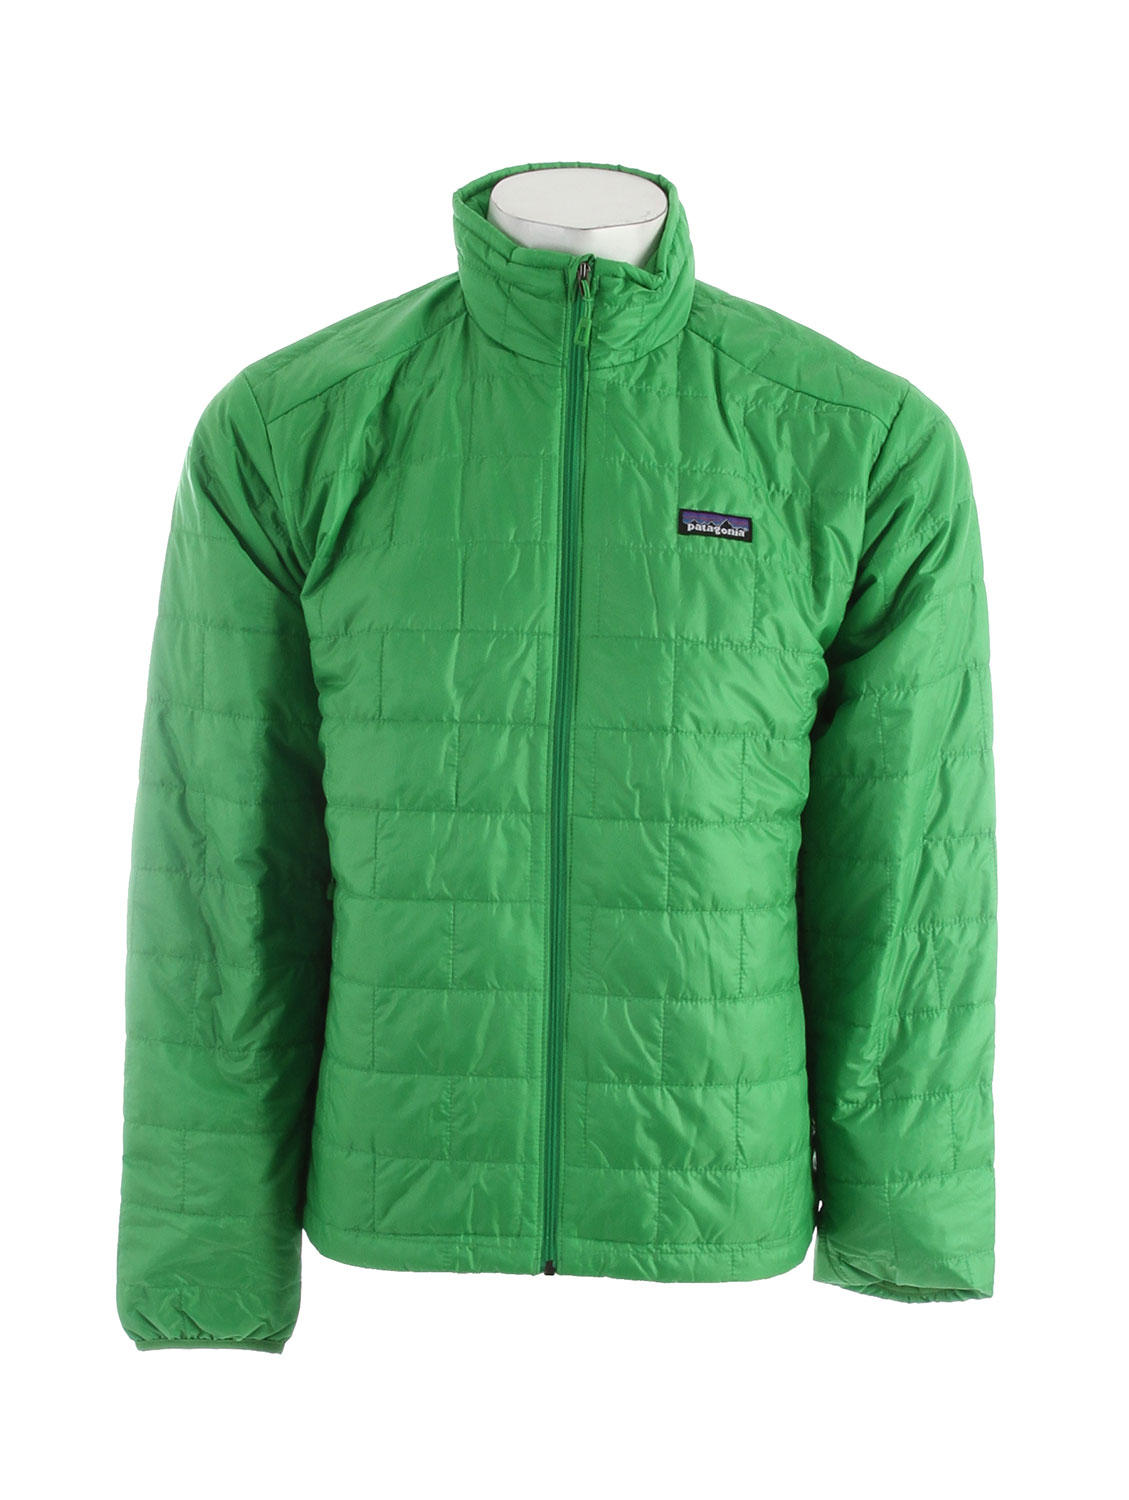 Windproof and water-resistant, the full-zip Nano Puff Jacket is made with warm, incredibly lightweight, highly compressible 60-g PrimaLoft One insulation, and is ideal as an insulating layer or outerwear in cold climates. FABRIC: Shell: 1-oz 15-denier 100% recycled polyester. Insulation: 60-g PrimaLoft One 100% polyester (70% recycled). Lining: 1.4-oz 22-denier 100% recycled polyester. Shell and lining have a Deluge DWR (durable water repellent) finishKey Features of the Patagonia Nano Puff Jacket: Regular fit Ultralight ripstop recycled polyester shell fabric has a Deluge DWR finish Lightweight 60-g PrimaLoft One insulation provides excellent warmth and compressibility Unique quilt pattern holds insulation in place for durability Zippered pockets: two handwarmers, one internal chest pocket (doubles as stuffsack) with a reinforced carabineer clip-in loop Dual-adjust drawcord hem seals out wind - $128.95